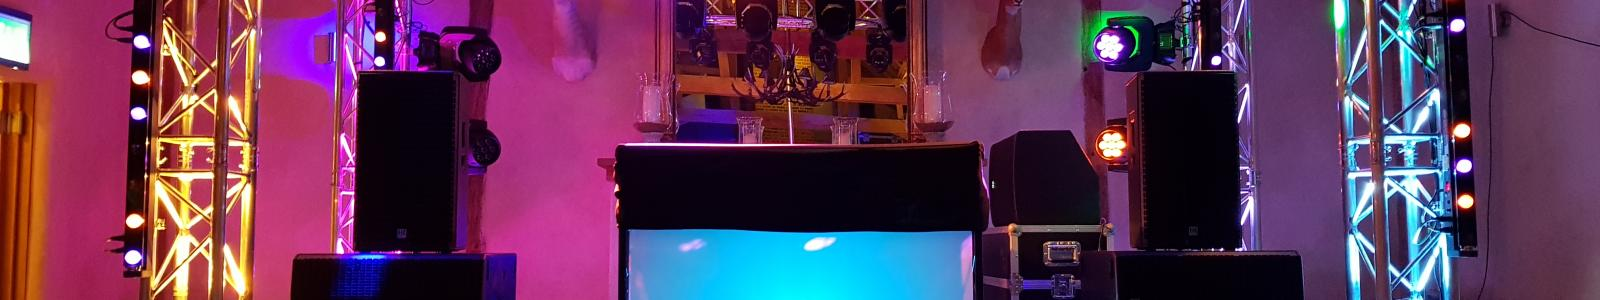 Mixers/Decks header - lights and DJ console